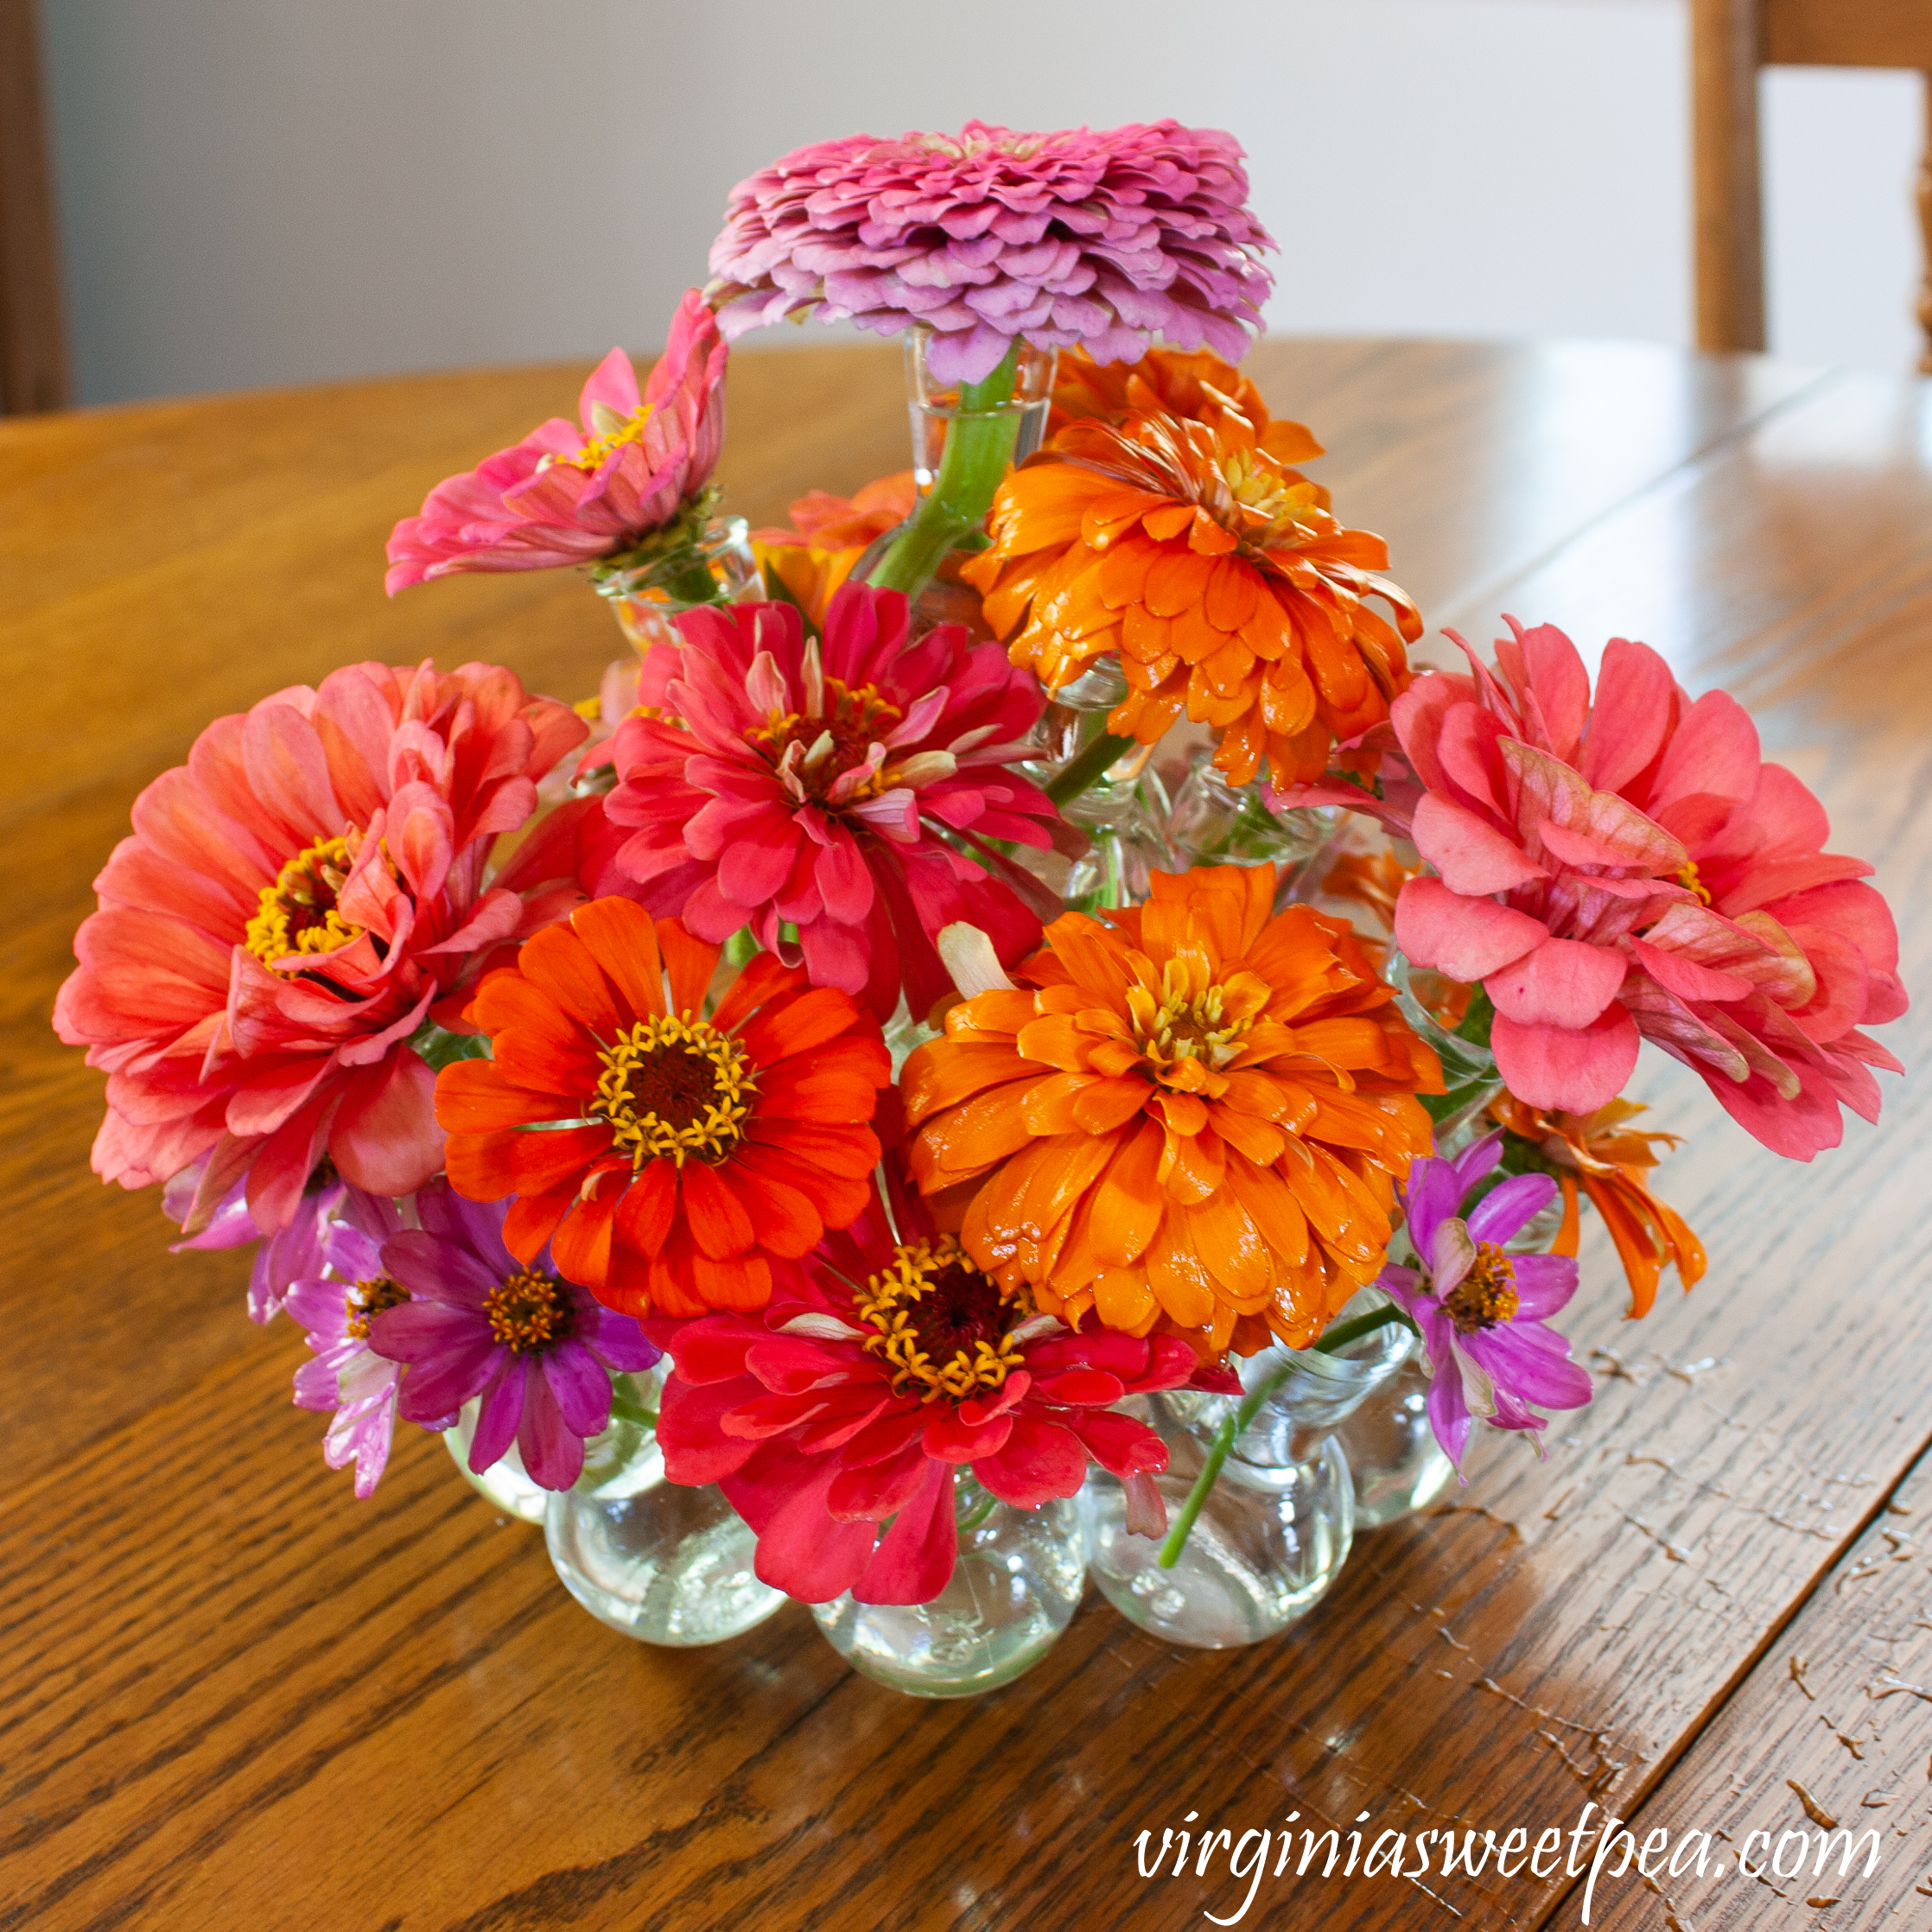 Step-by-step instructions to make an easy summer centerpiece.